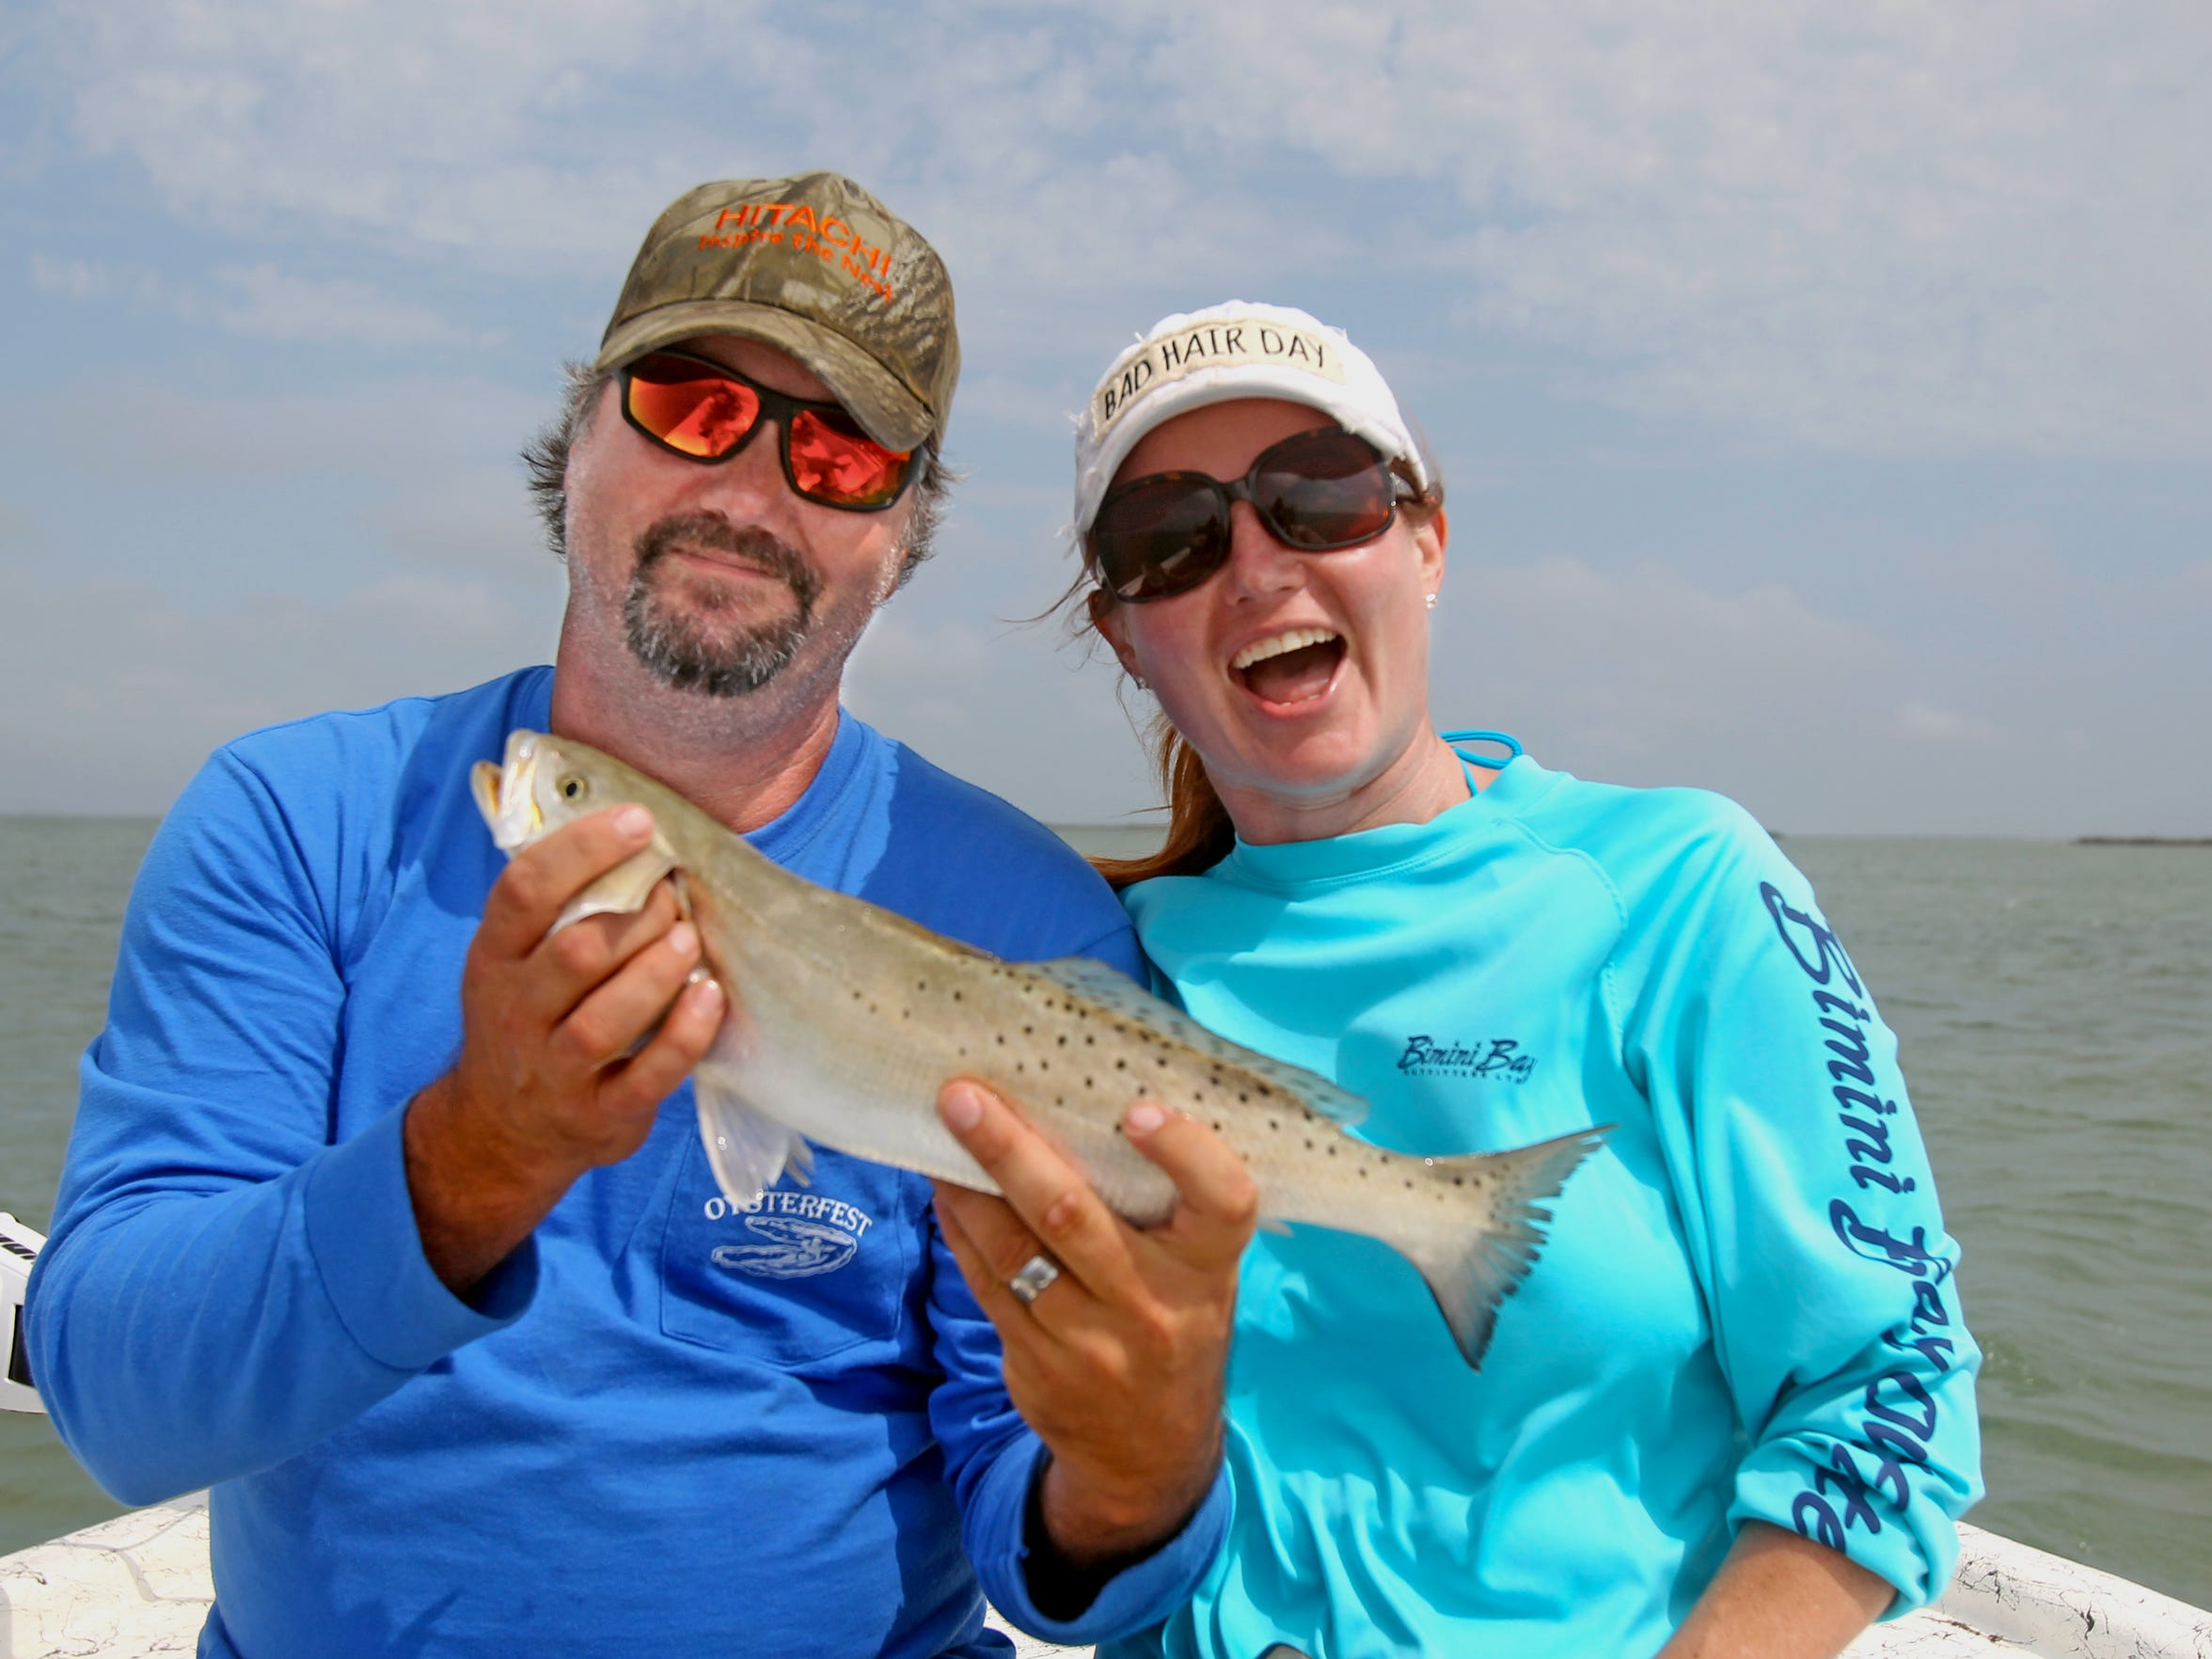 Rockport residents JP and Sam McCrary took some time off for fishing. The couple has fed and housed thousands as part of their Rockport Relief Camp.